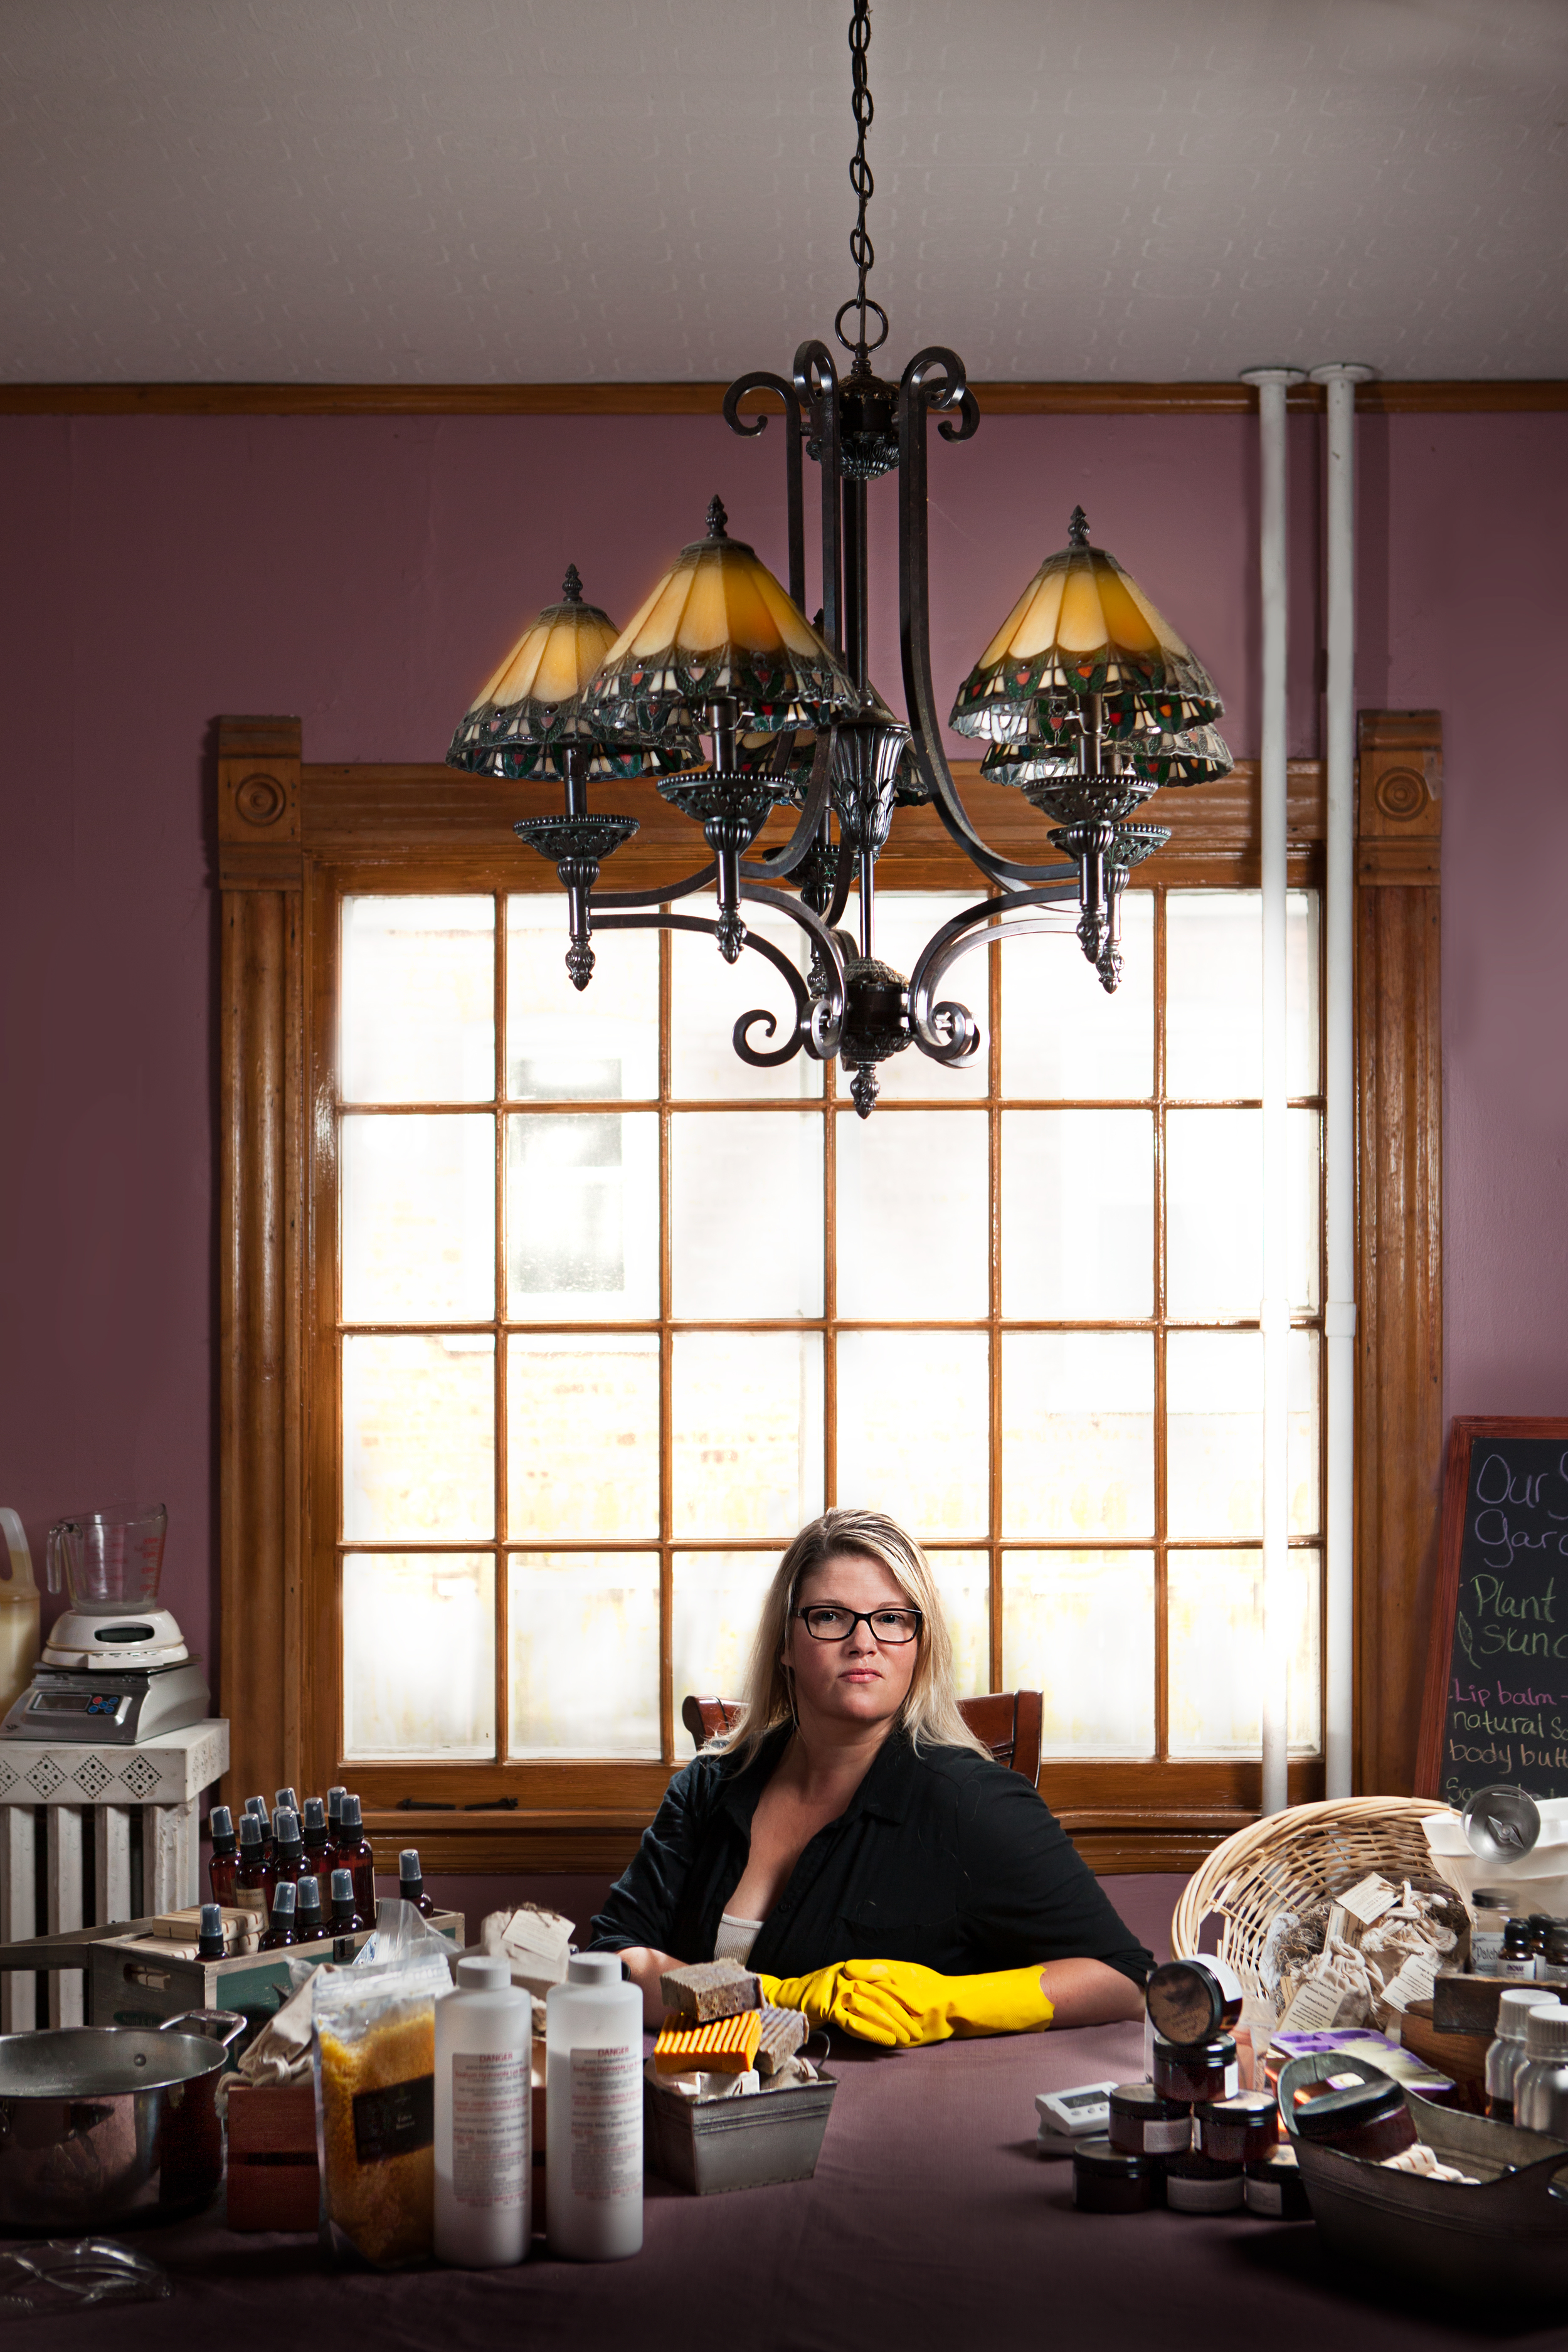 Artist Environmental Portrait | Commercial Photography Chicago